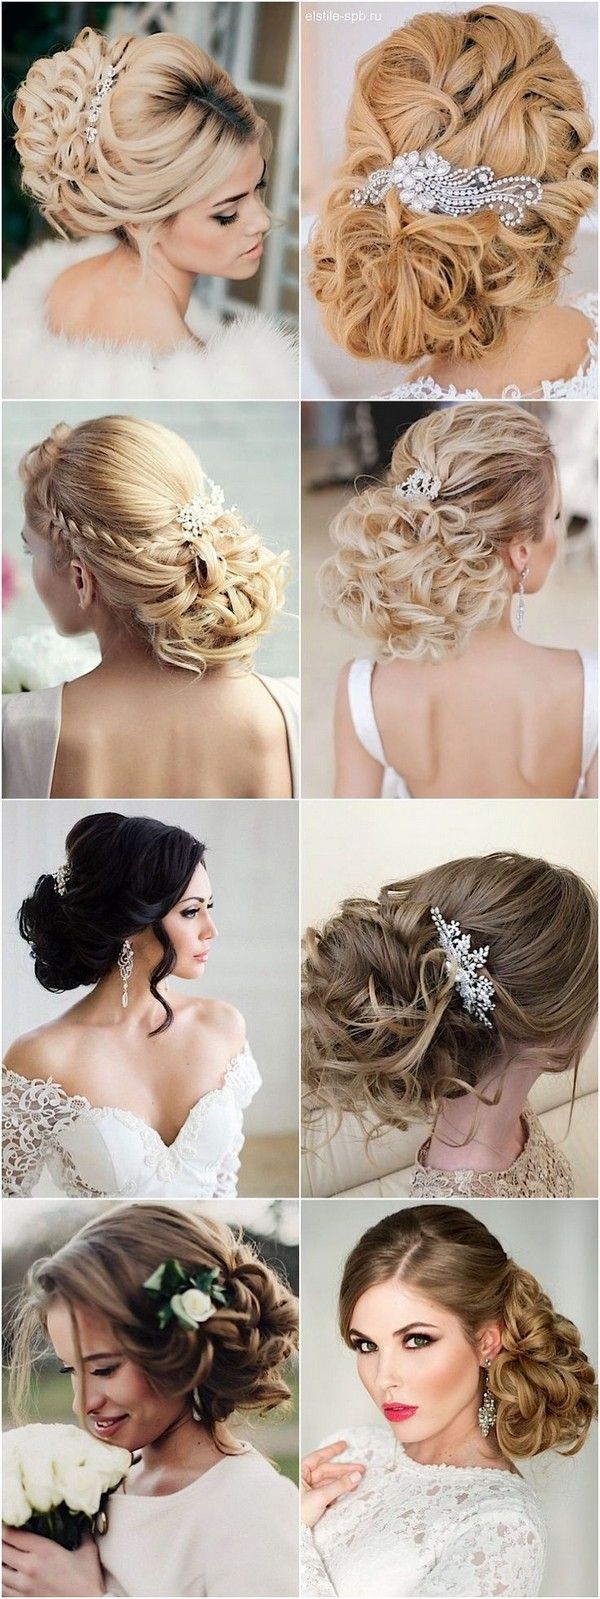 Wedding-Hairstyles-with-Chic-Updos